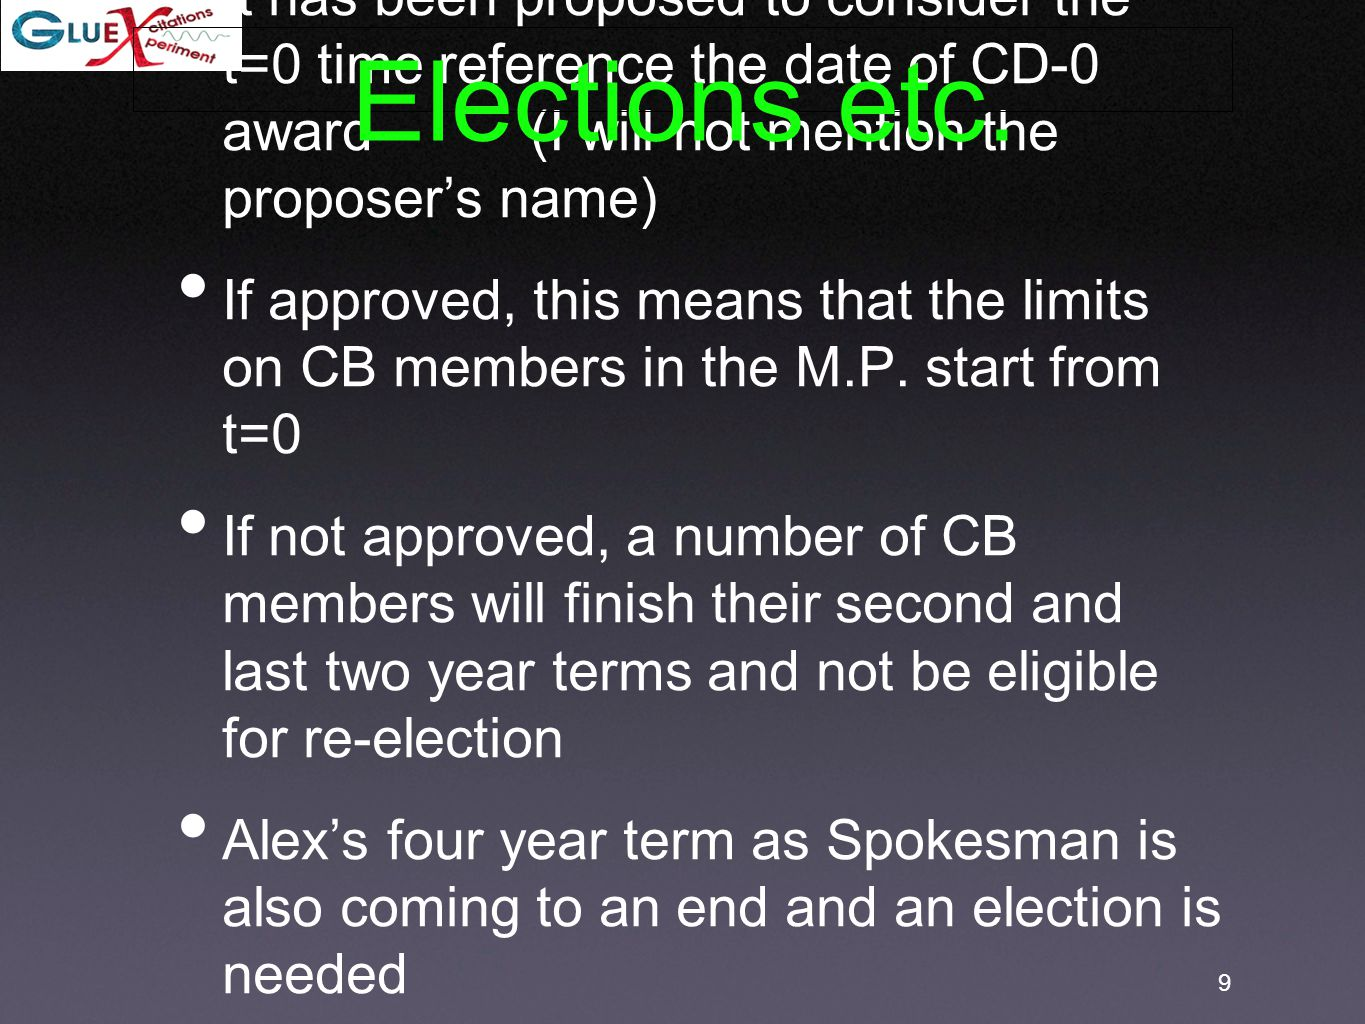 9 It has been proposed to consider the t=0 time reference the date of CD-0 award (I will not mention the proposer's name) If approved, this means that the limits on CB members in the M.P.